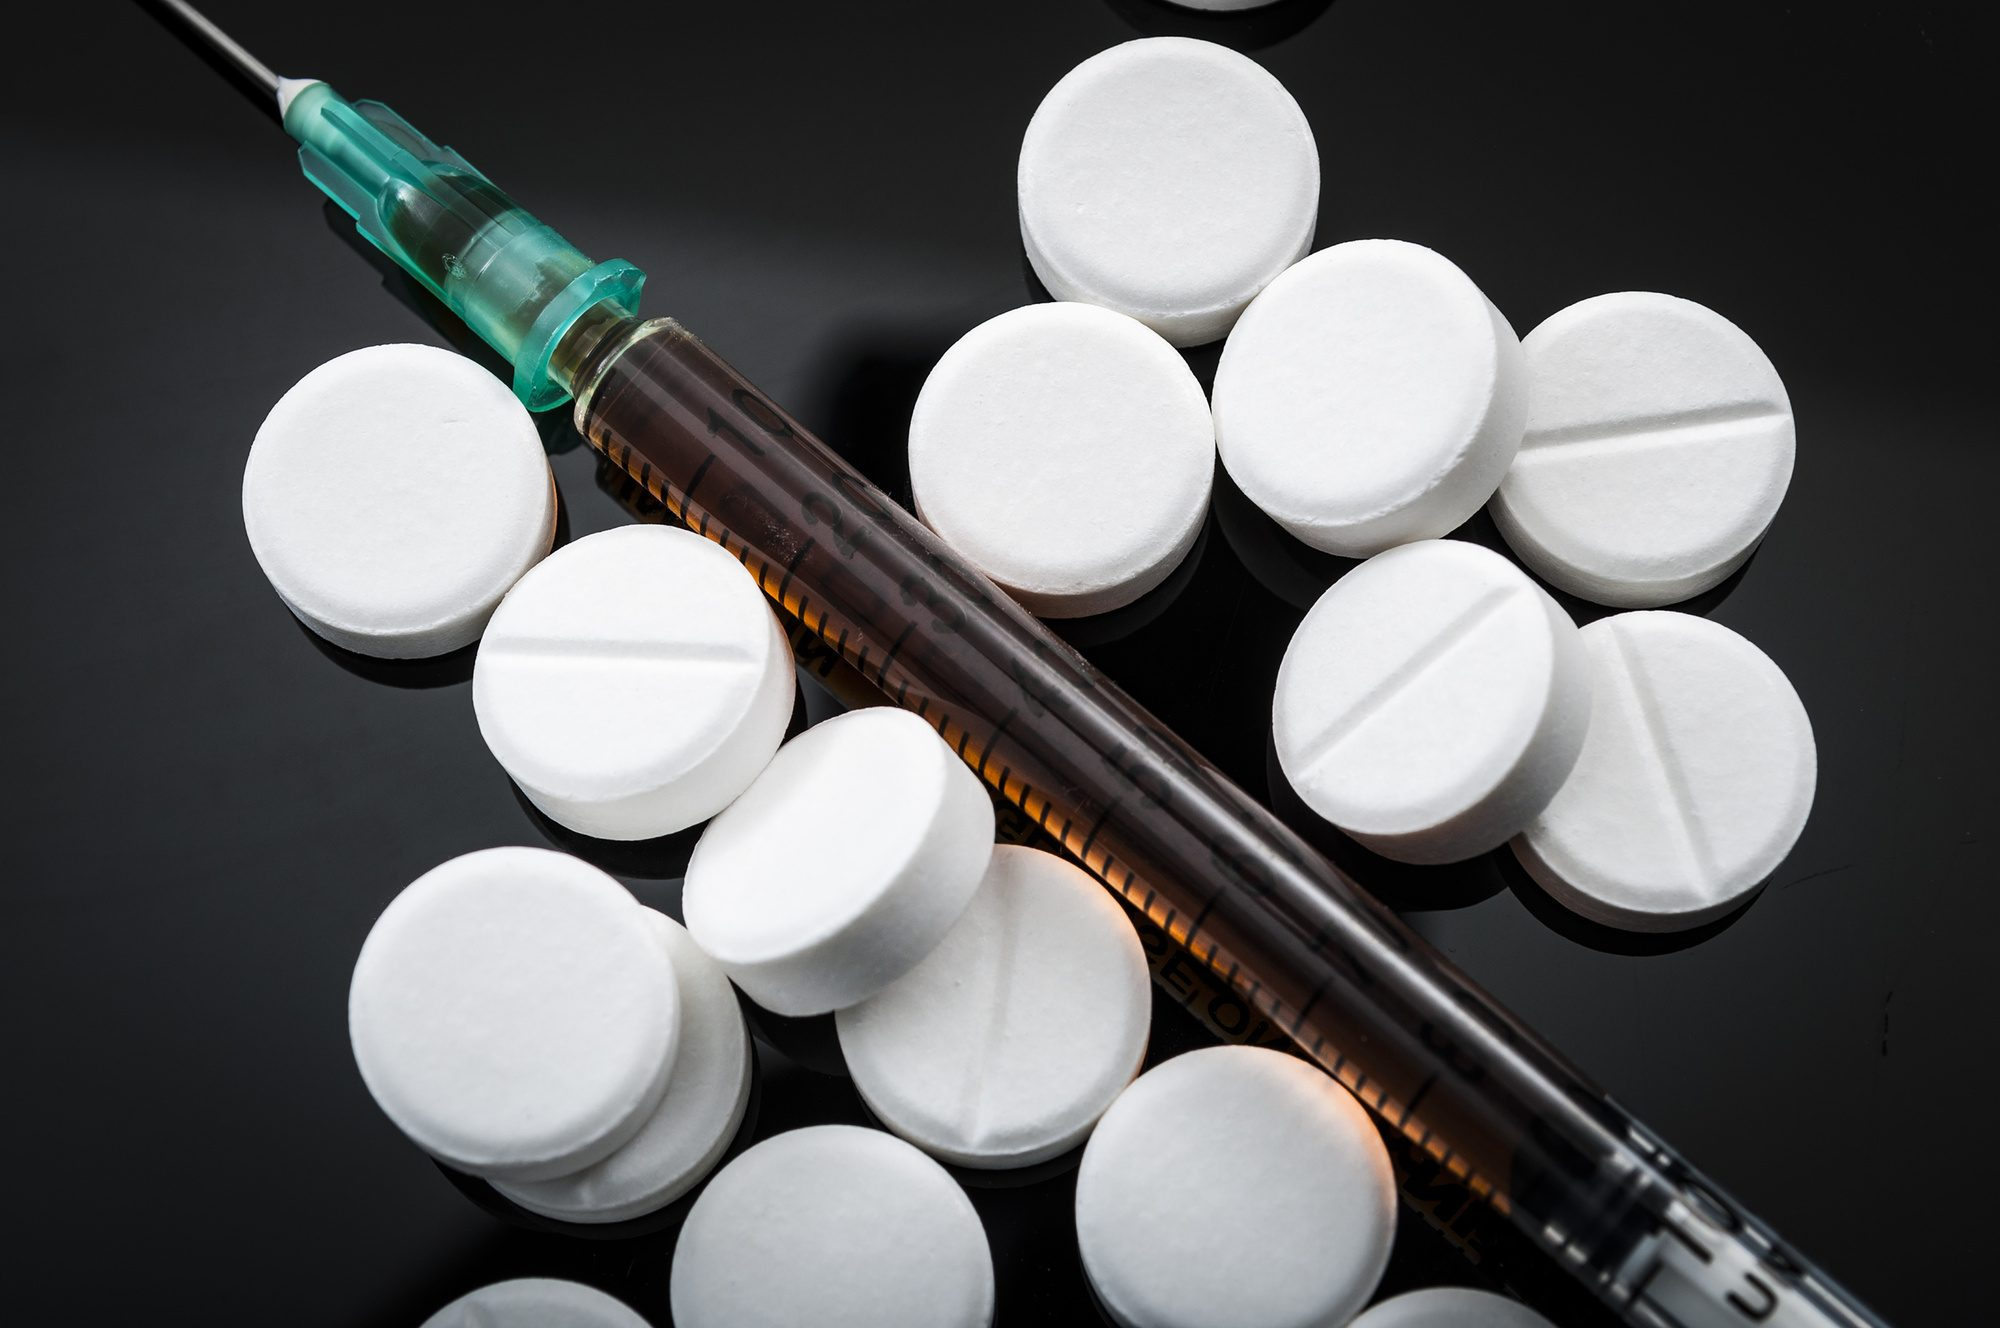 Opioid epidemic and drug abuse concept with closeup on a heroin syringe or other narcotics surrounded by scattered prescription opioids. Oxycodone is the generic name for a range of opioid painkillers